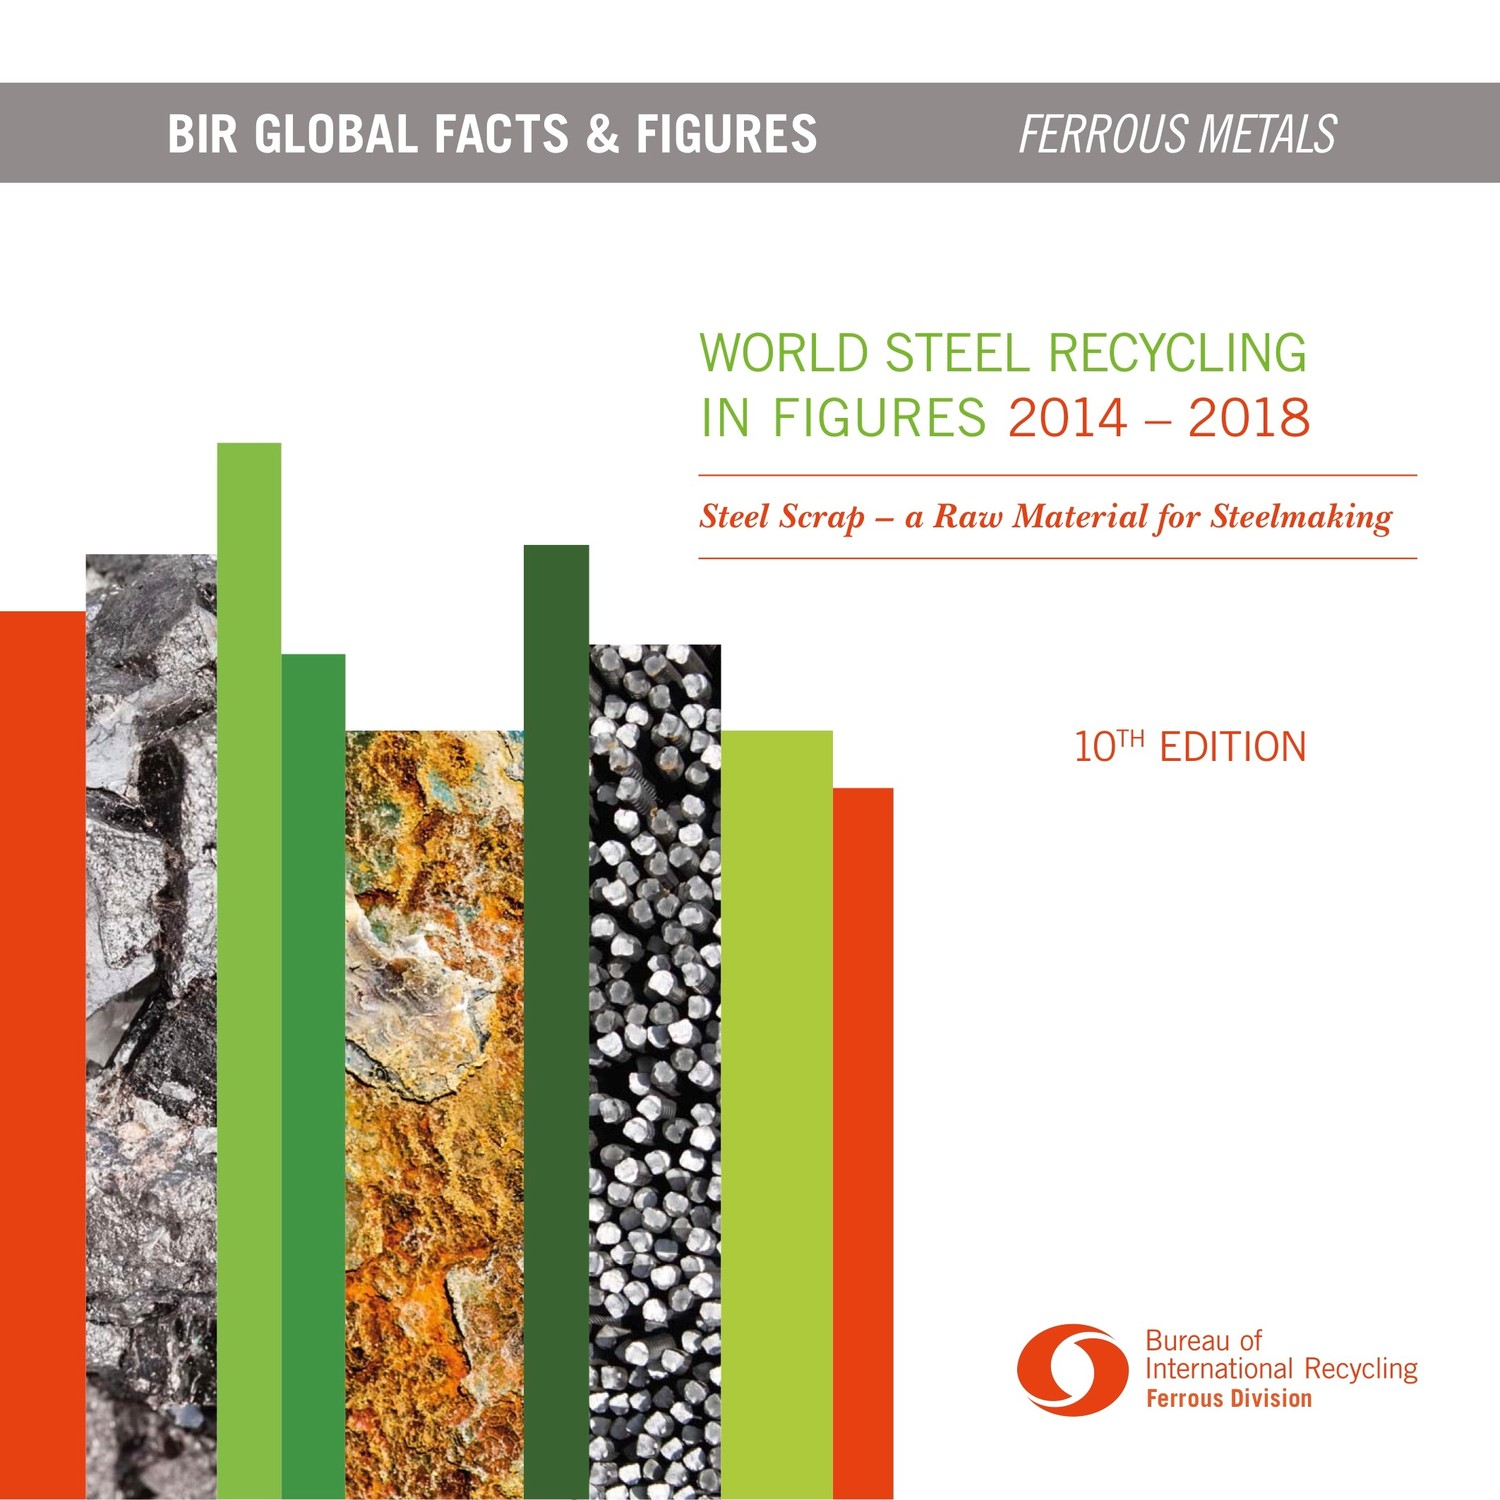 World Steel Recycling in Figures 2014-2018